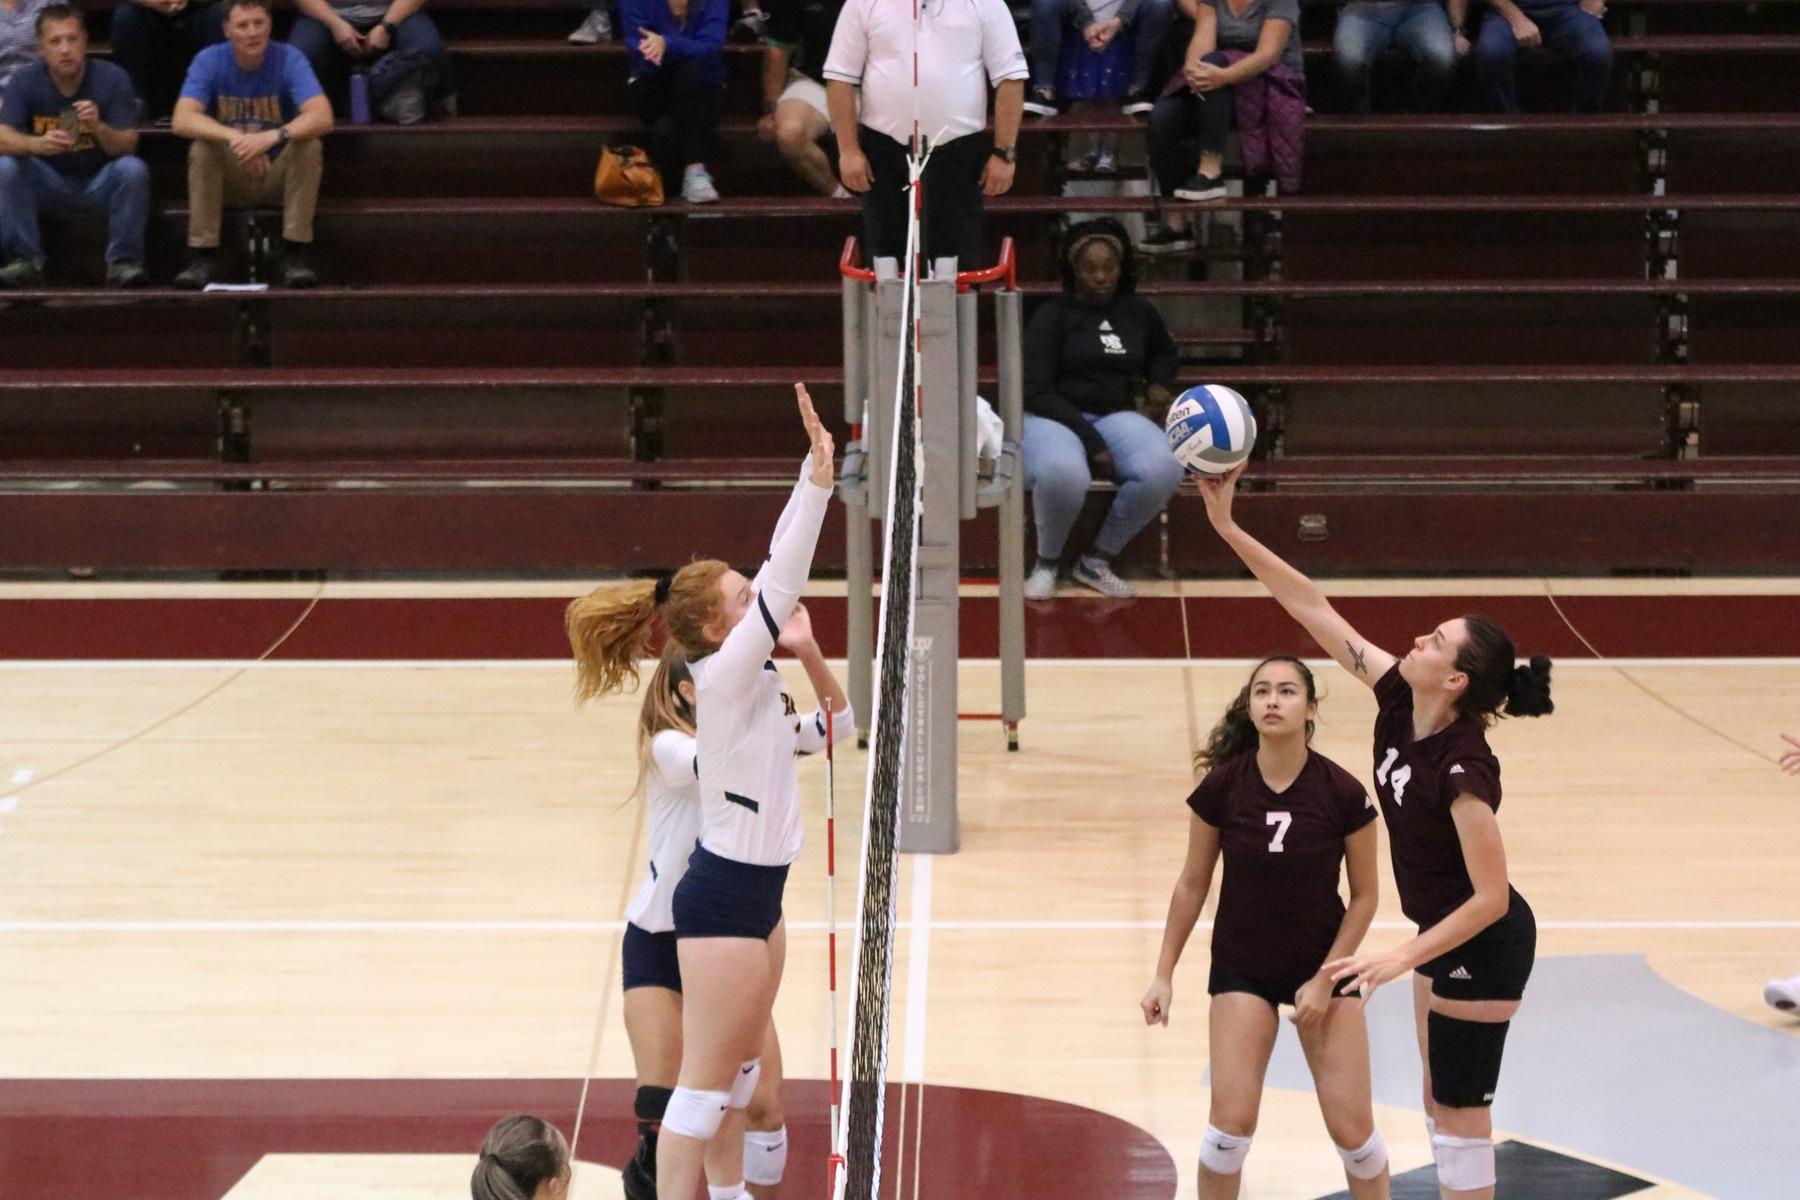 Siacotos posts career-high 15 kills, Loggers beat Linfield in season finale